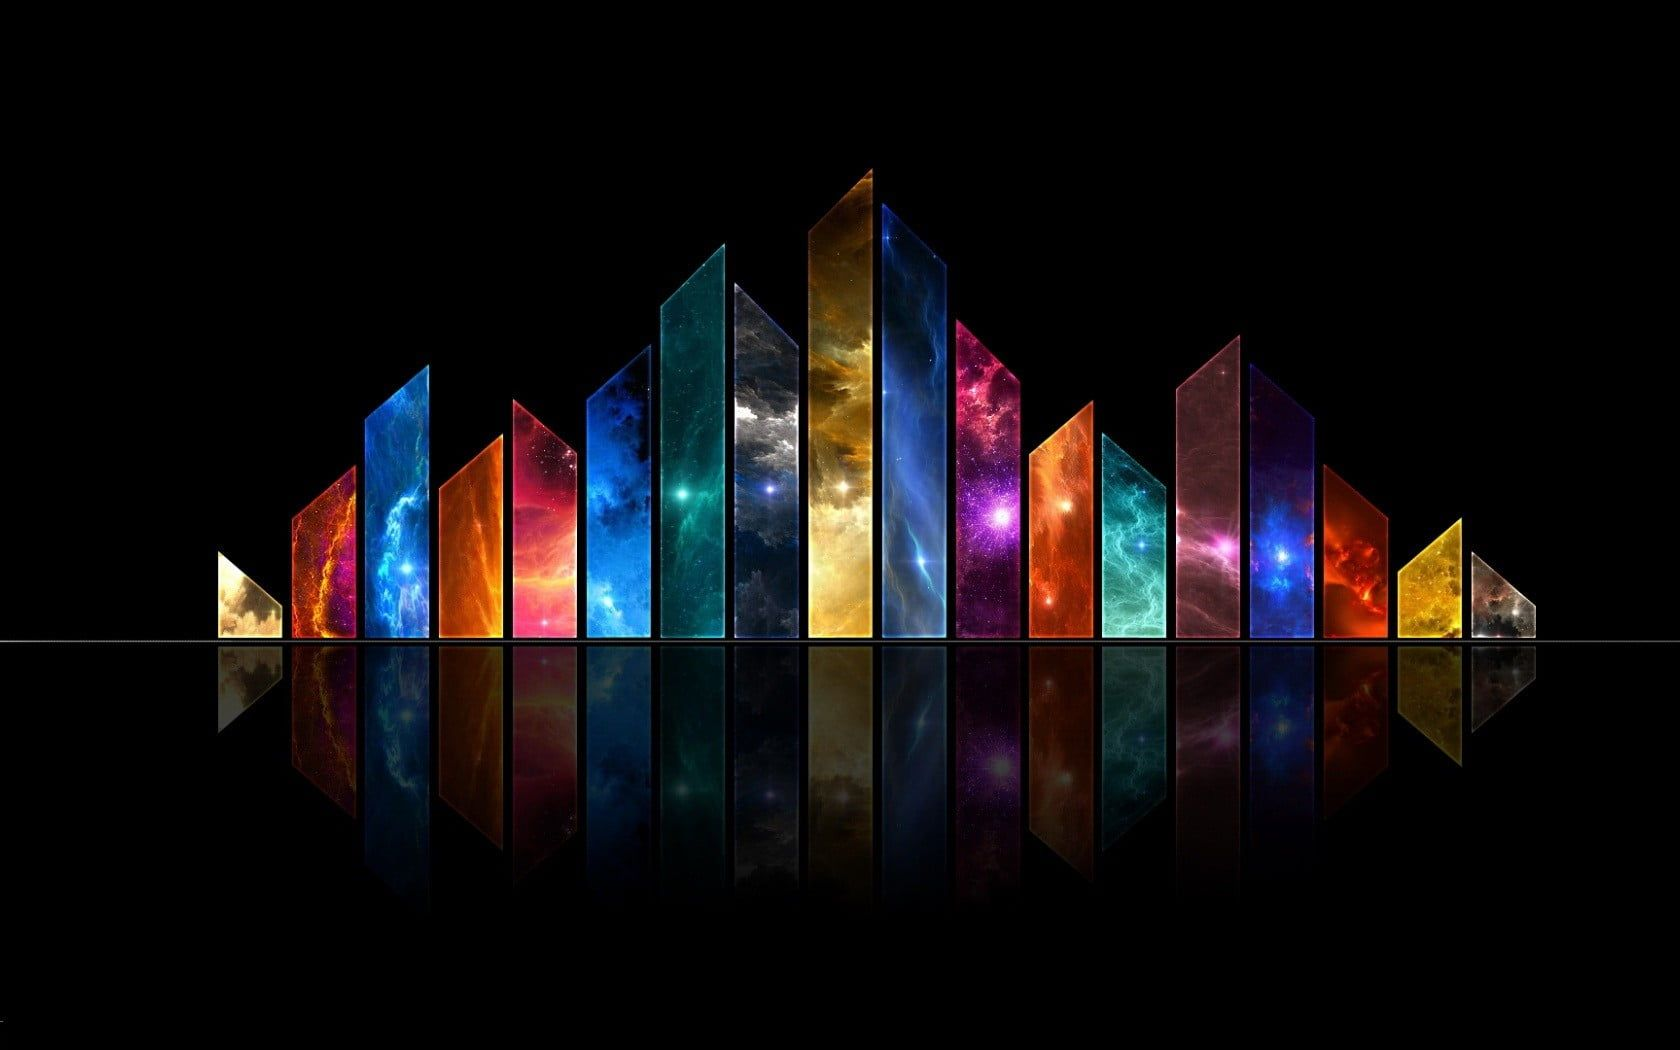 Assorted Color Bar Digital Wallpaper Stars Space Art Digital Art Reflection Collage 720 Abstract Wallpaper Abstract Wallpaper Backgrounds Digital Wallpaper